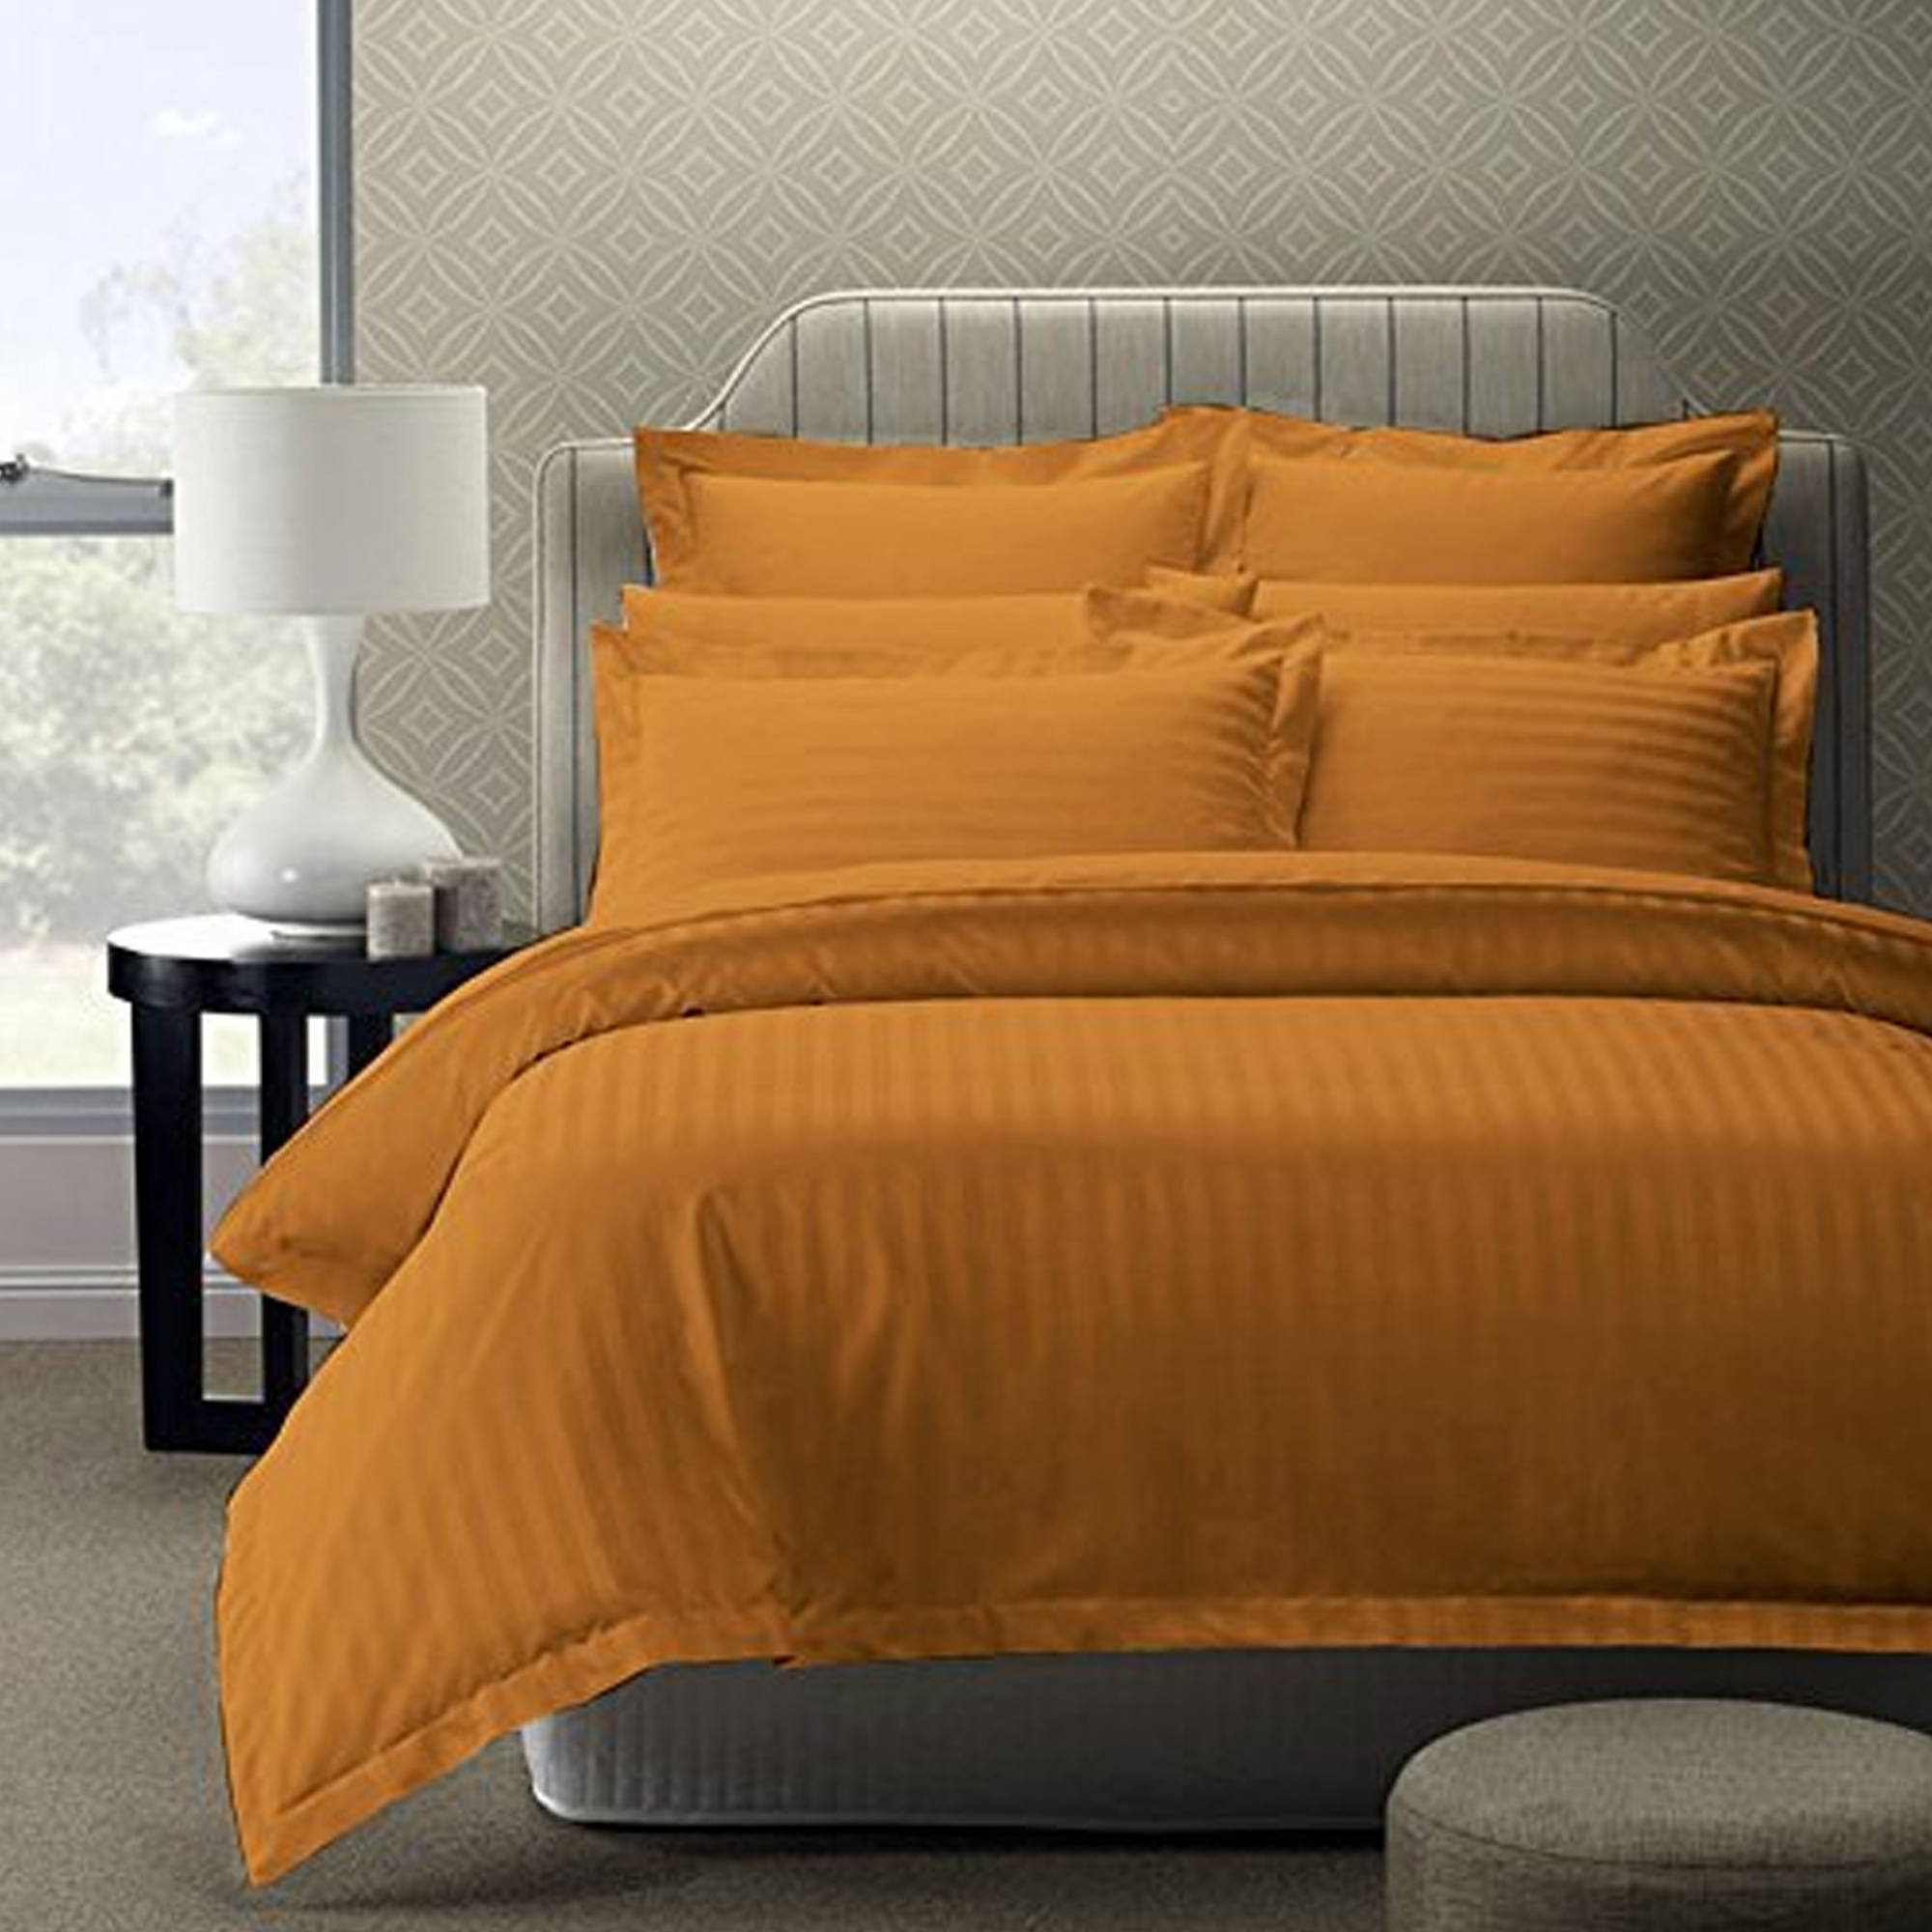 Mesmeric Mustard Gold Colored Self Design Cotton Double Bedsheet With Pillow Cover